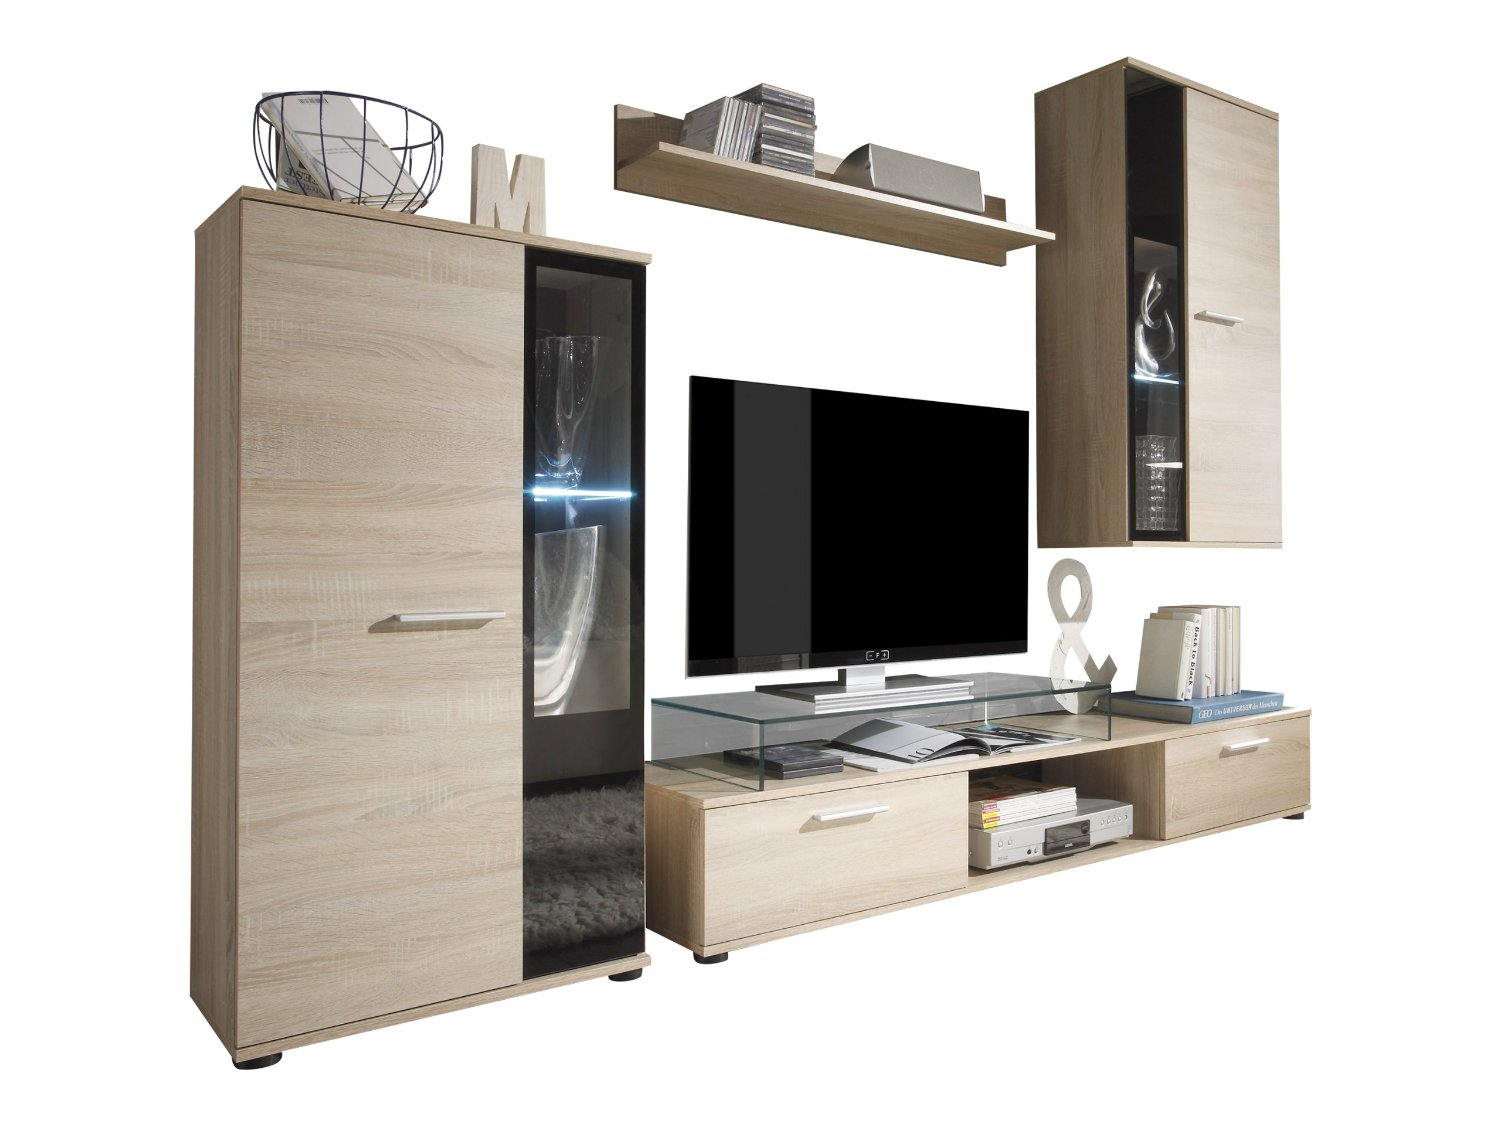 fliesen schachbrett. Black Bedroom Furniture Sets. Home Design Ideas